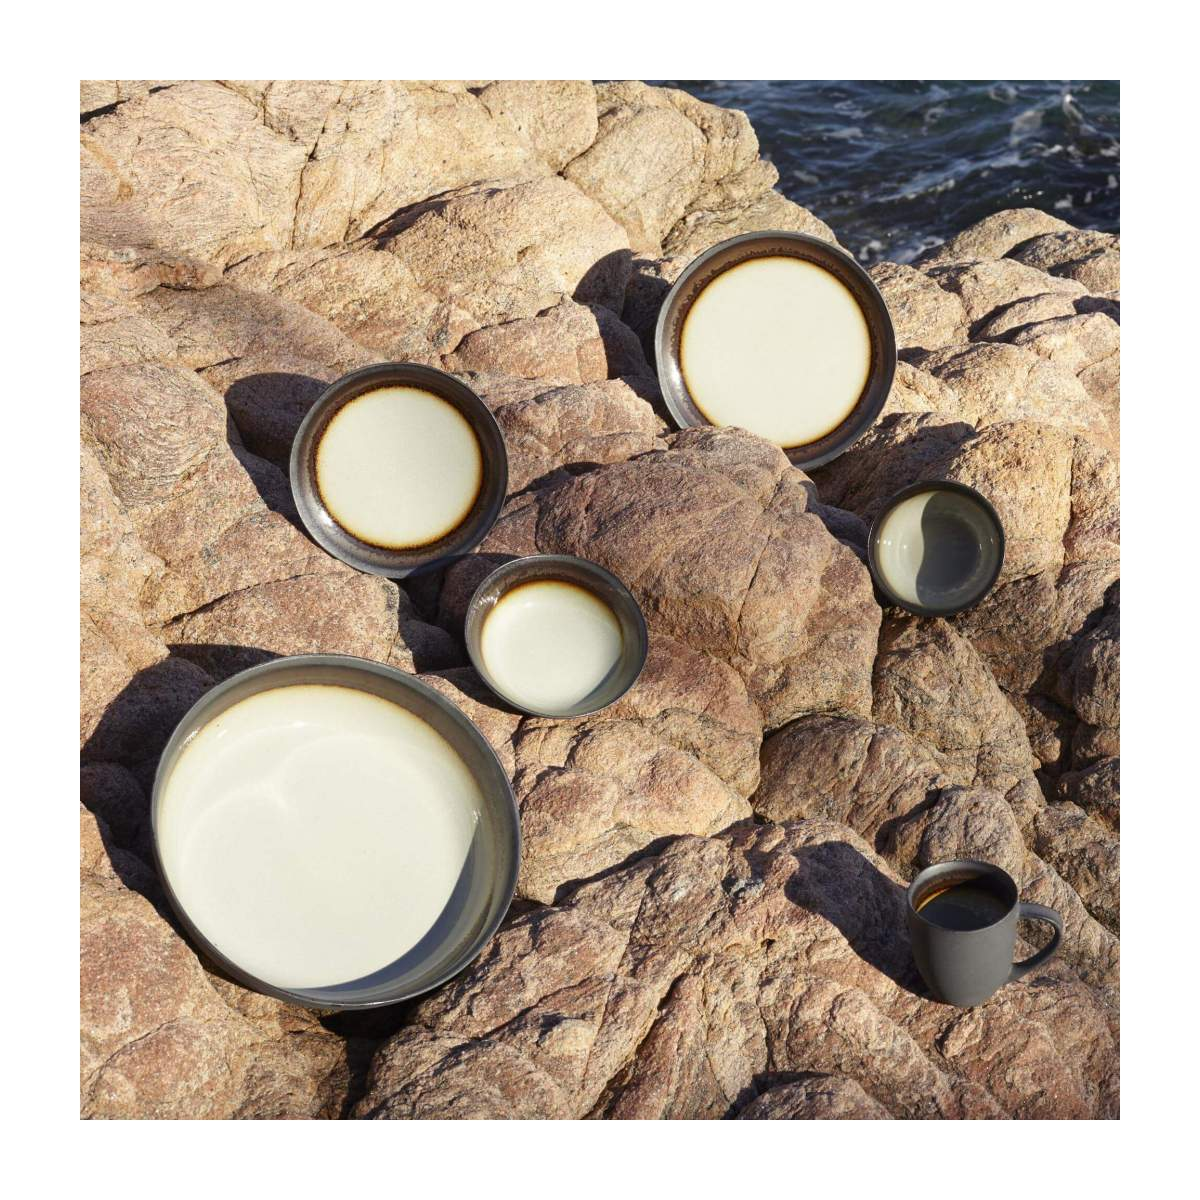 Dessert plate made of sandstone 22cm, grey and brown n°5